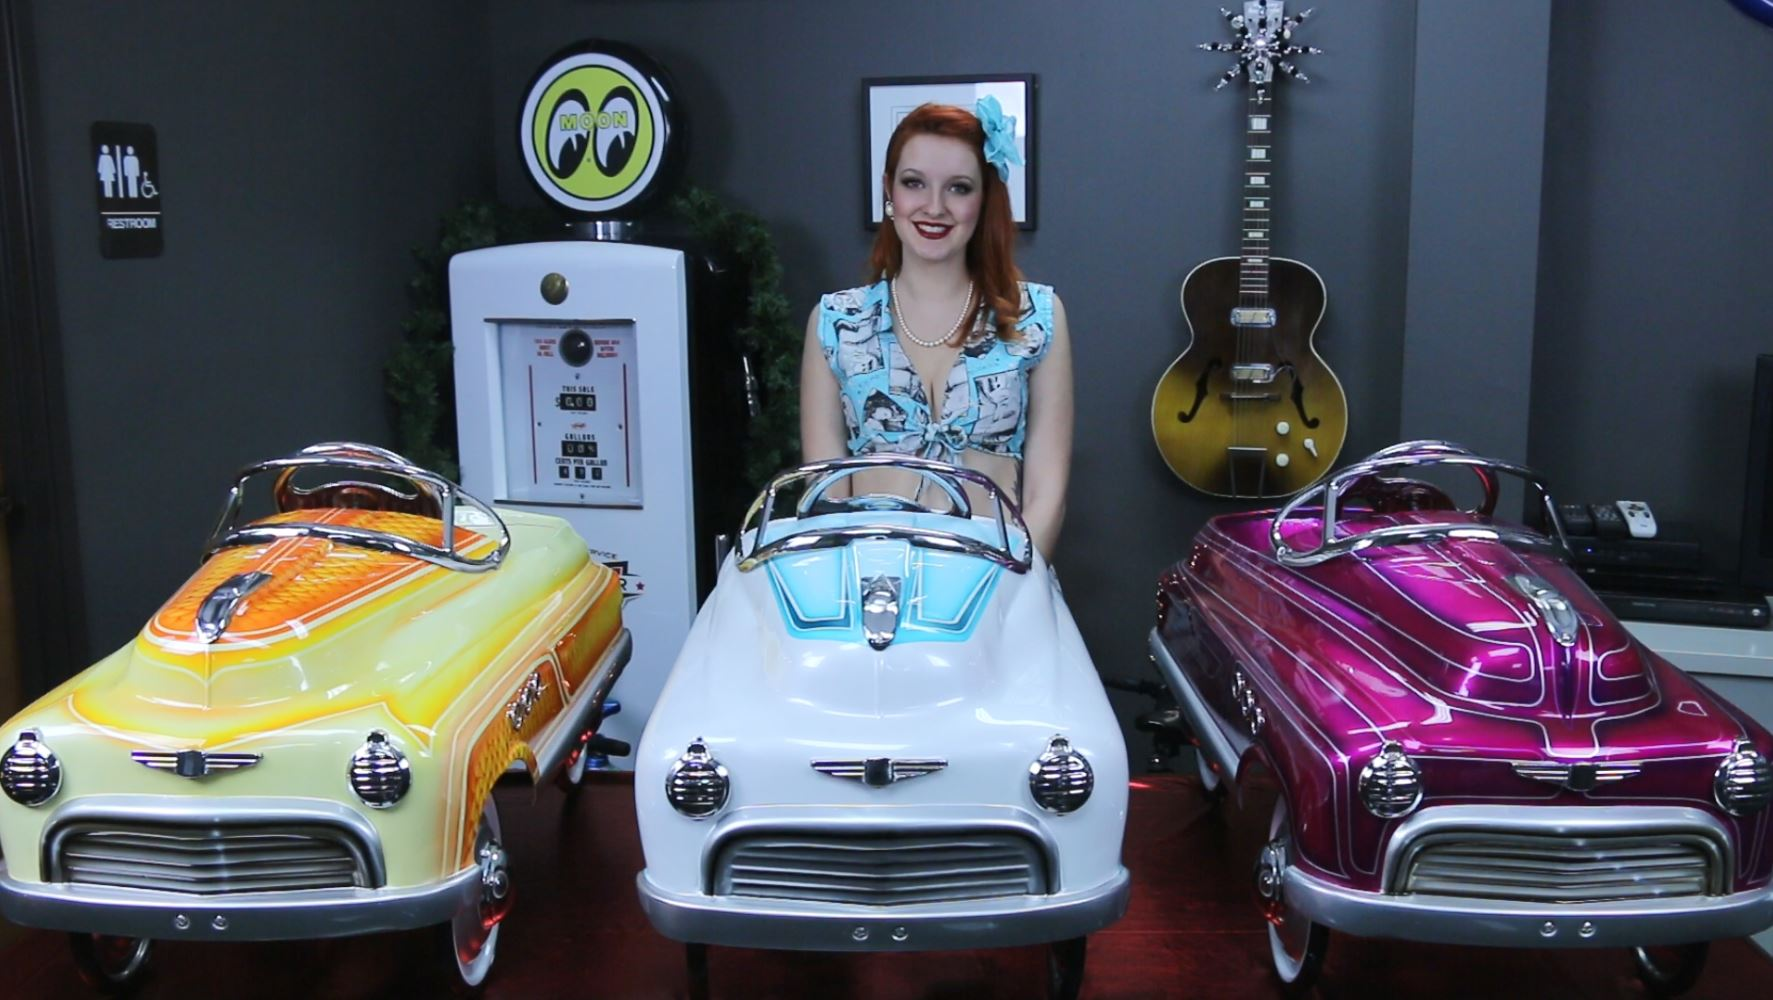 Custom-Painted, Hand-Airbrushed Comet Pedal Cars For Sale